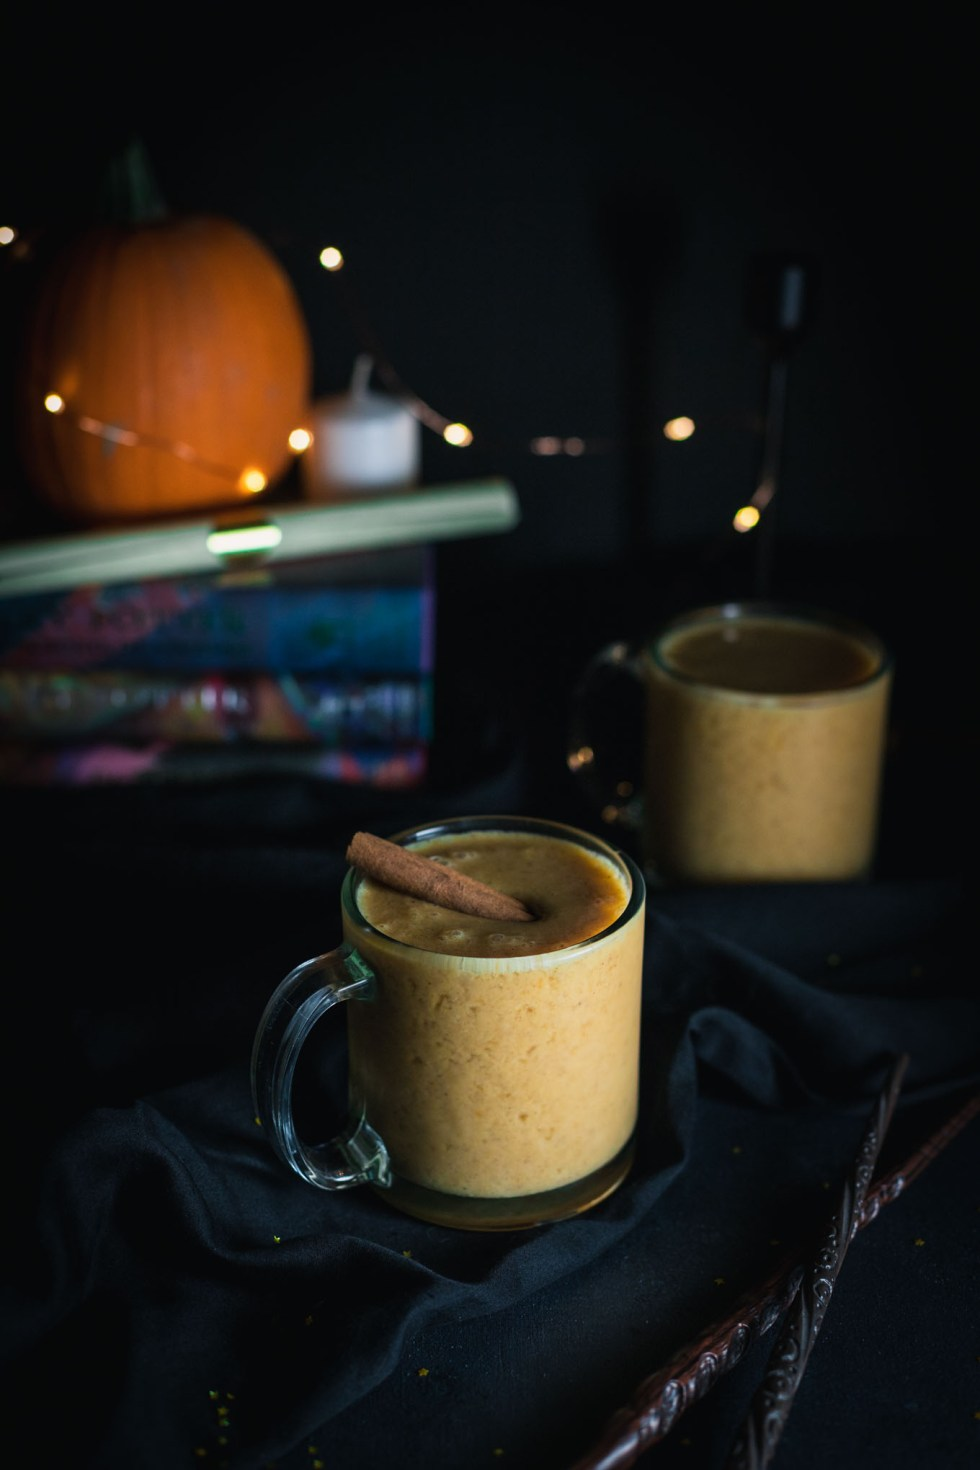 Harry Potter-inspired frozen pumpkin juice in glass mugs with cinnamon stick garnishes